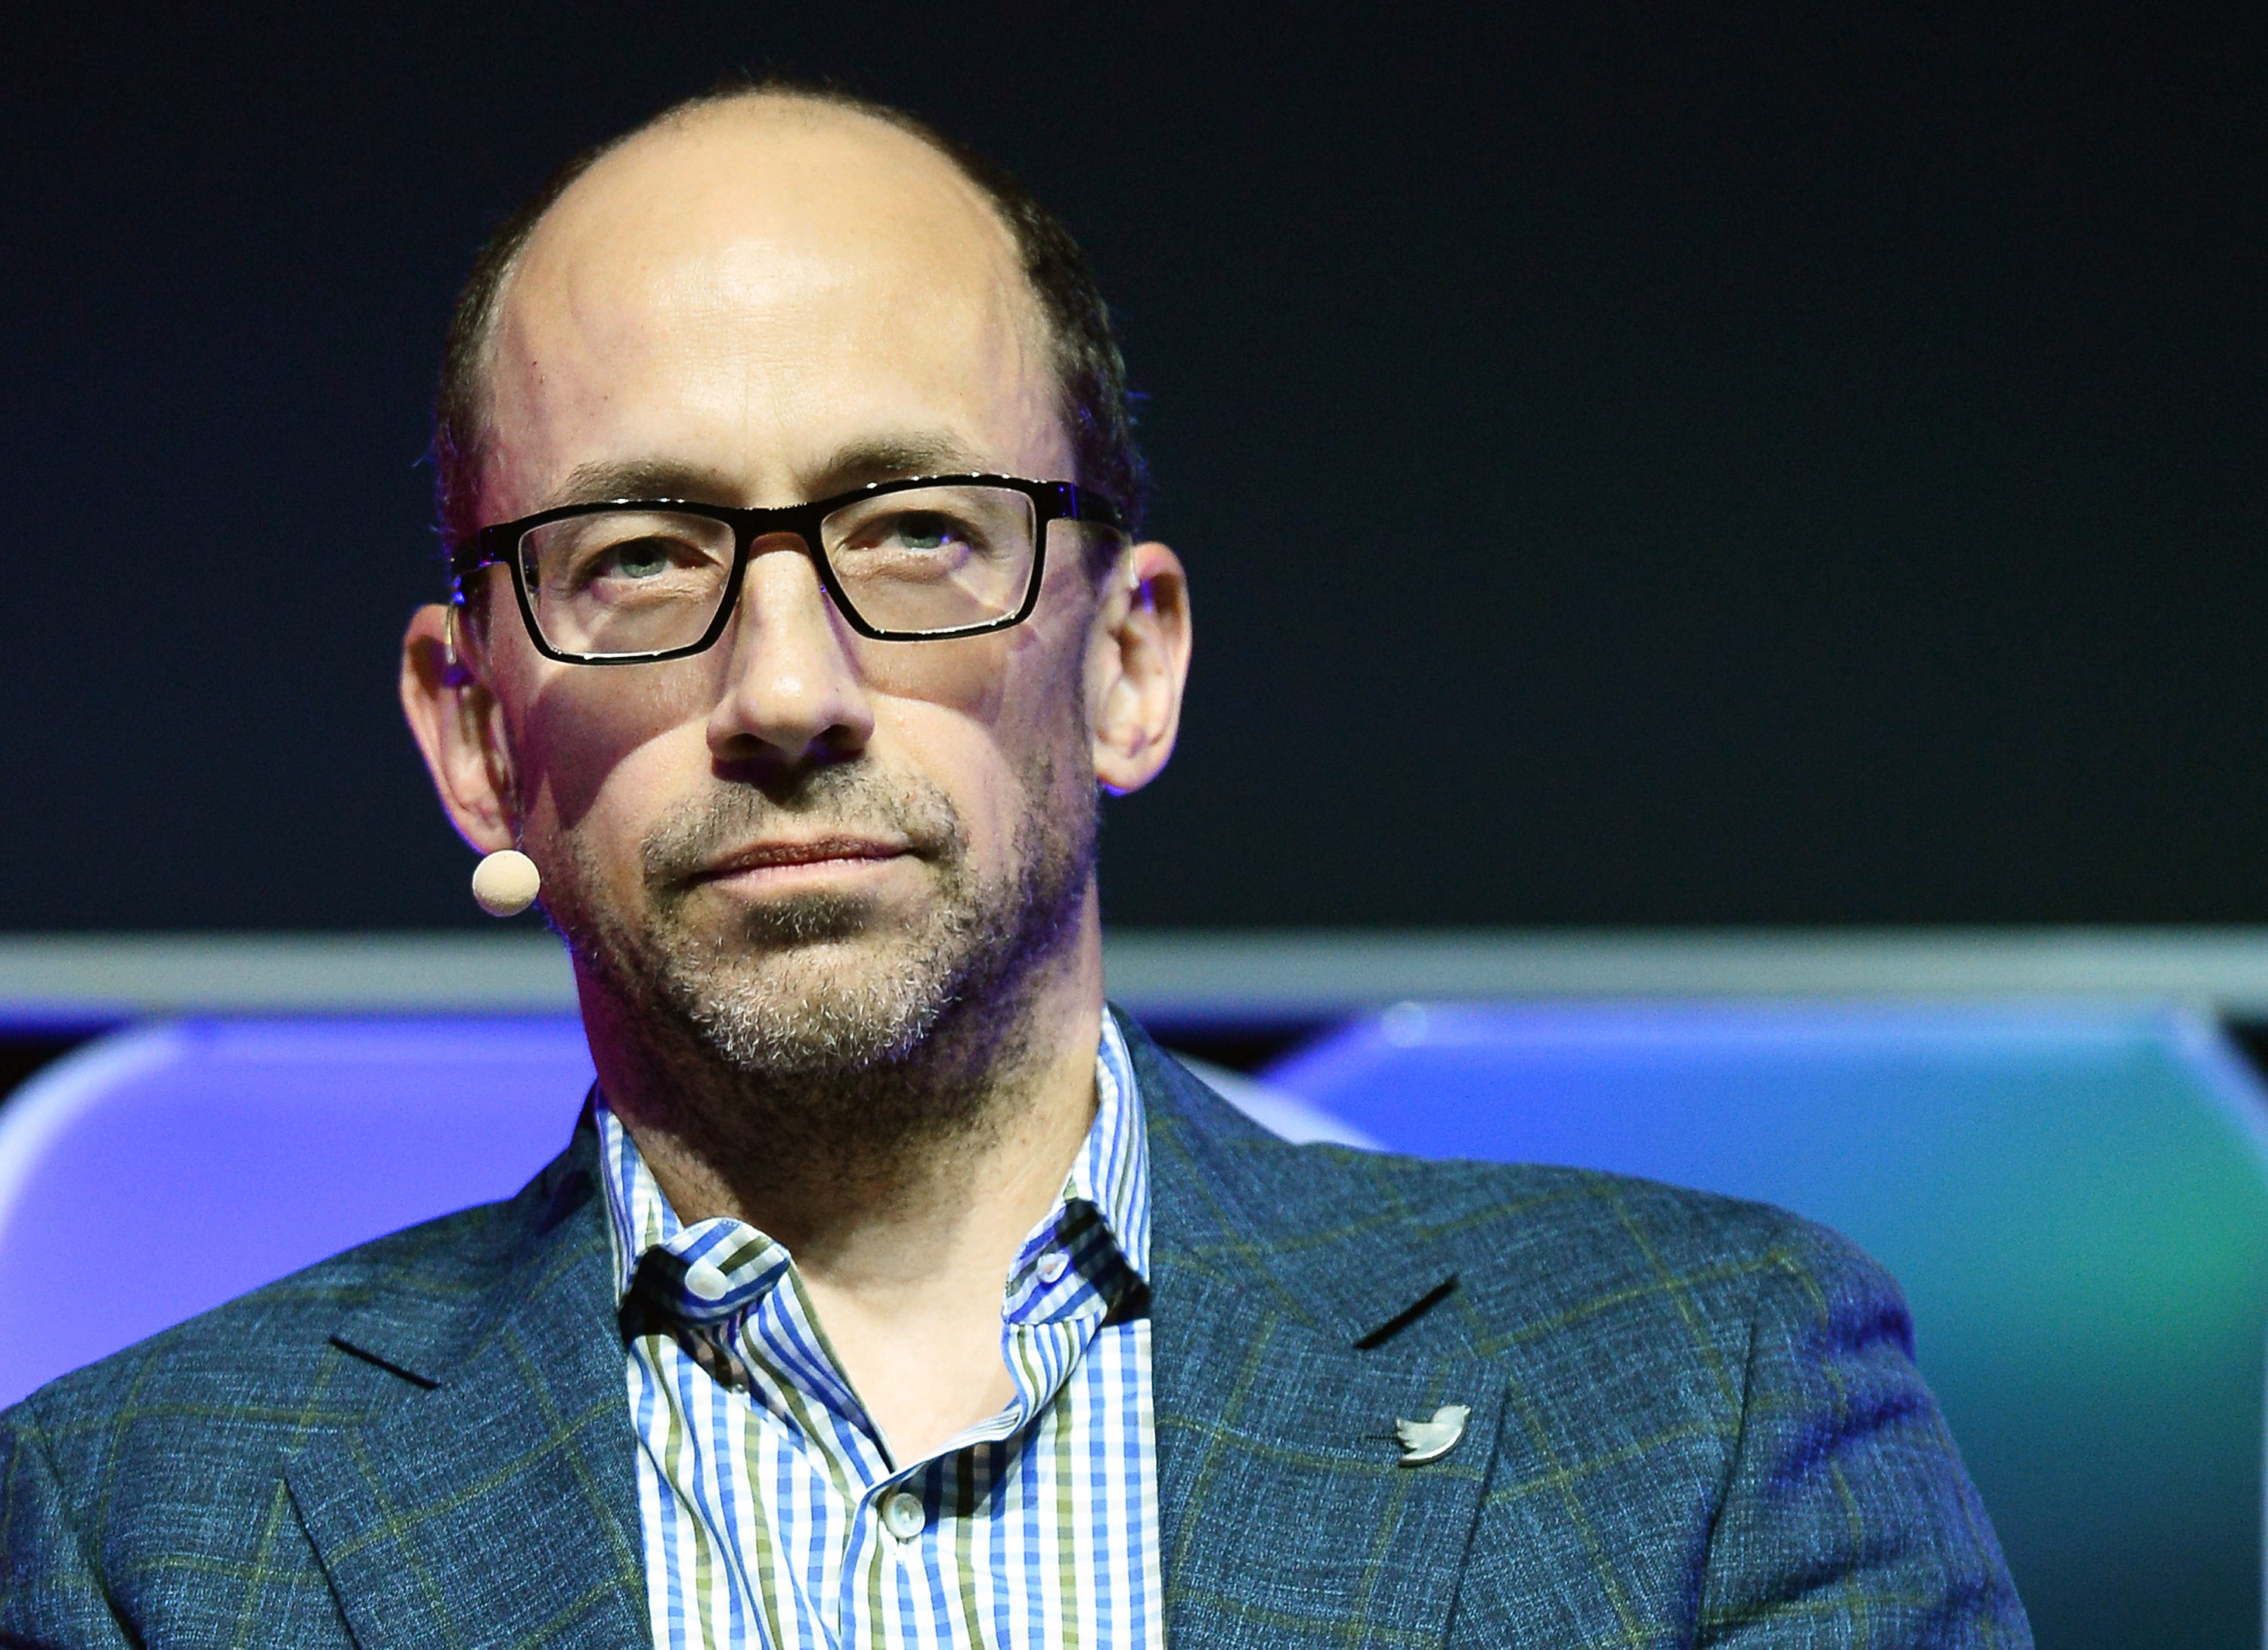 Twitter CEO Dick Costolo speaks during the Brand Matters keynote address at the 2014 International CES at The Las Vegas Hotel and Casino on Jan. 8, 2014 in Las Vegas.